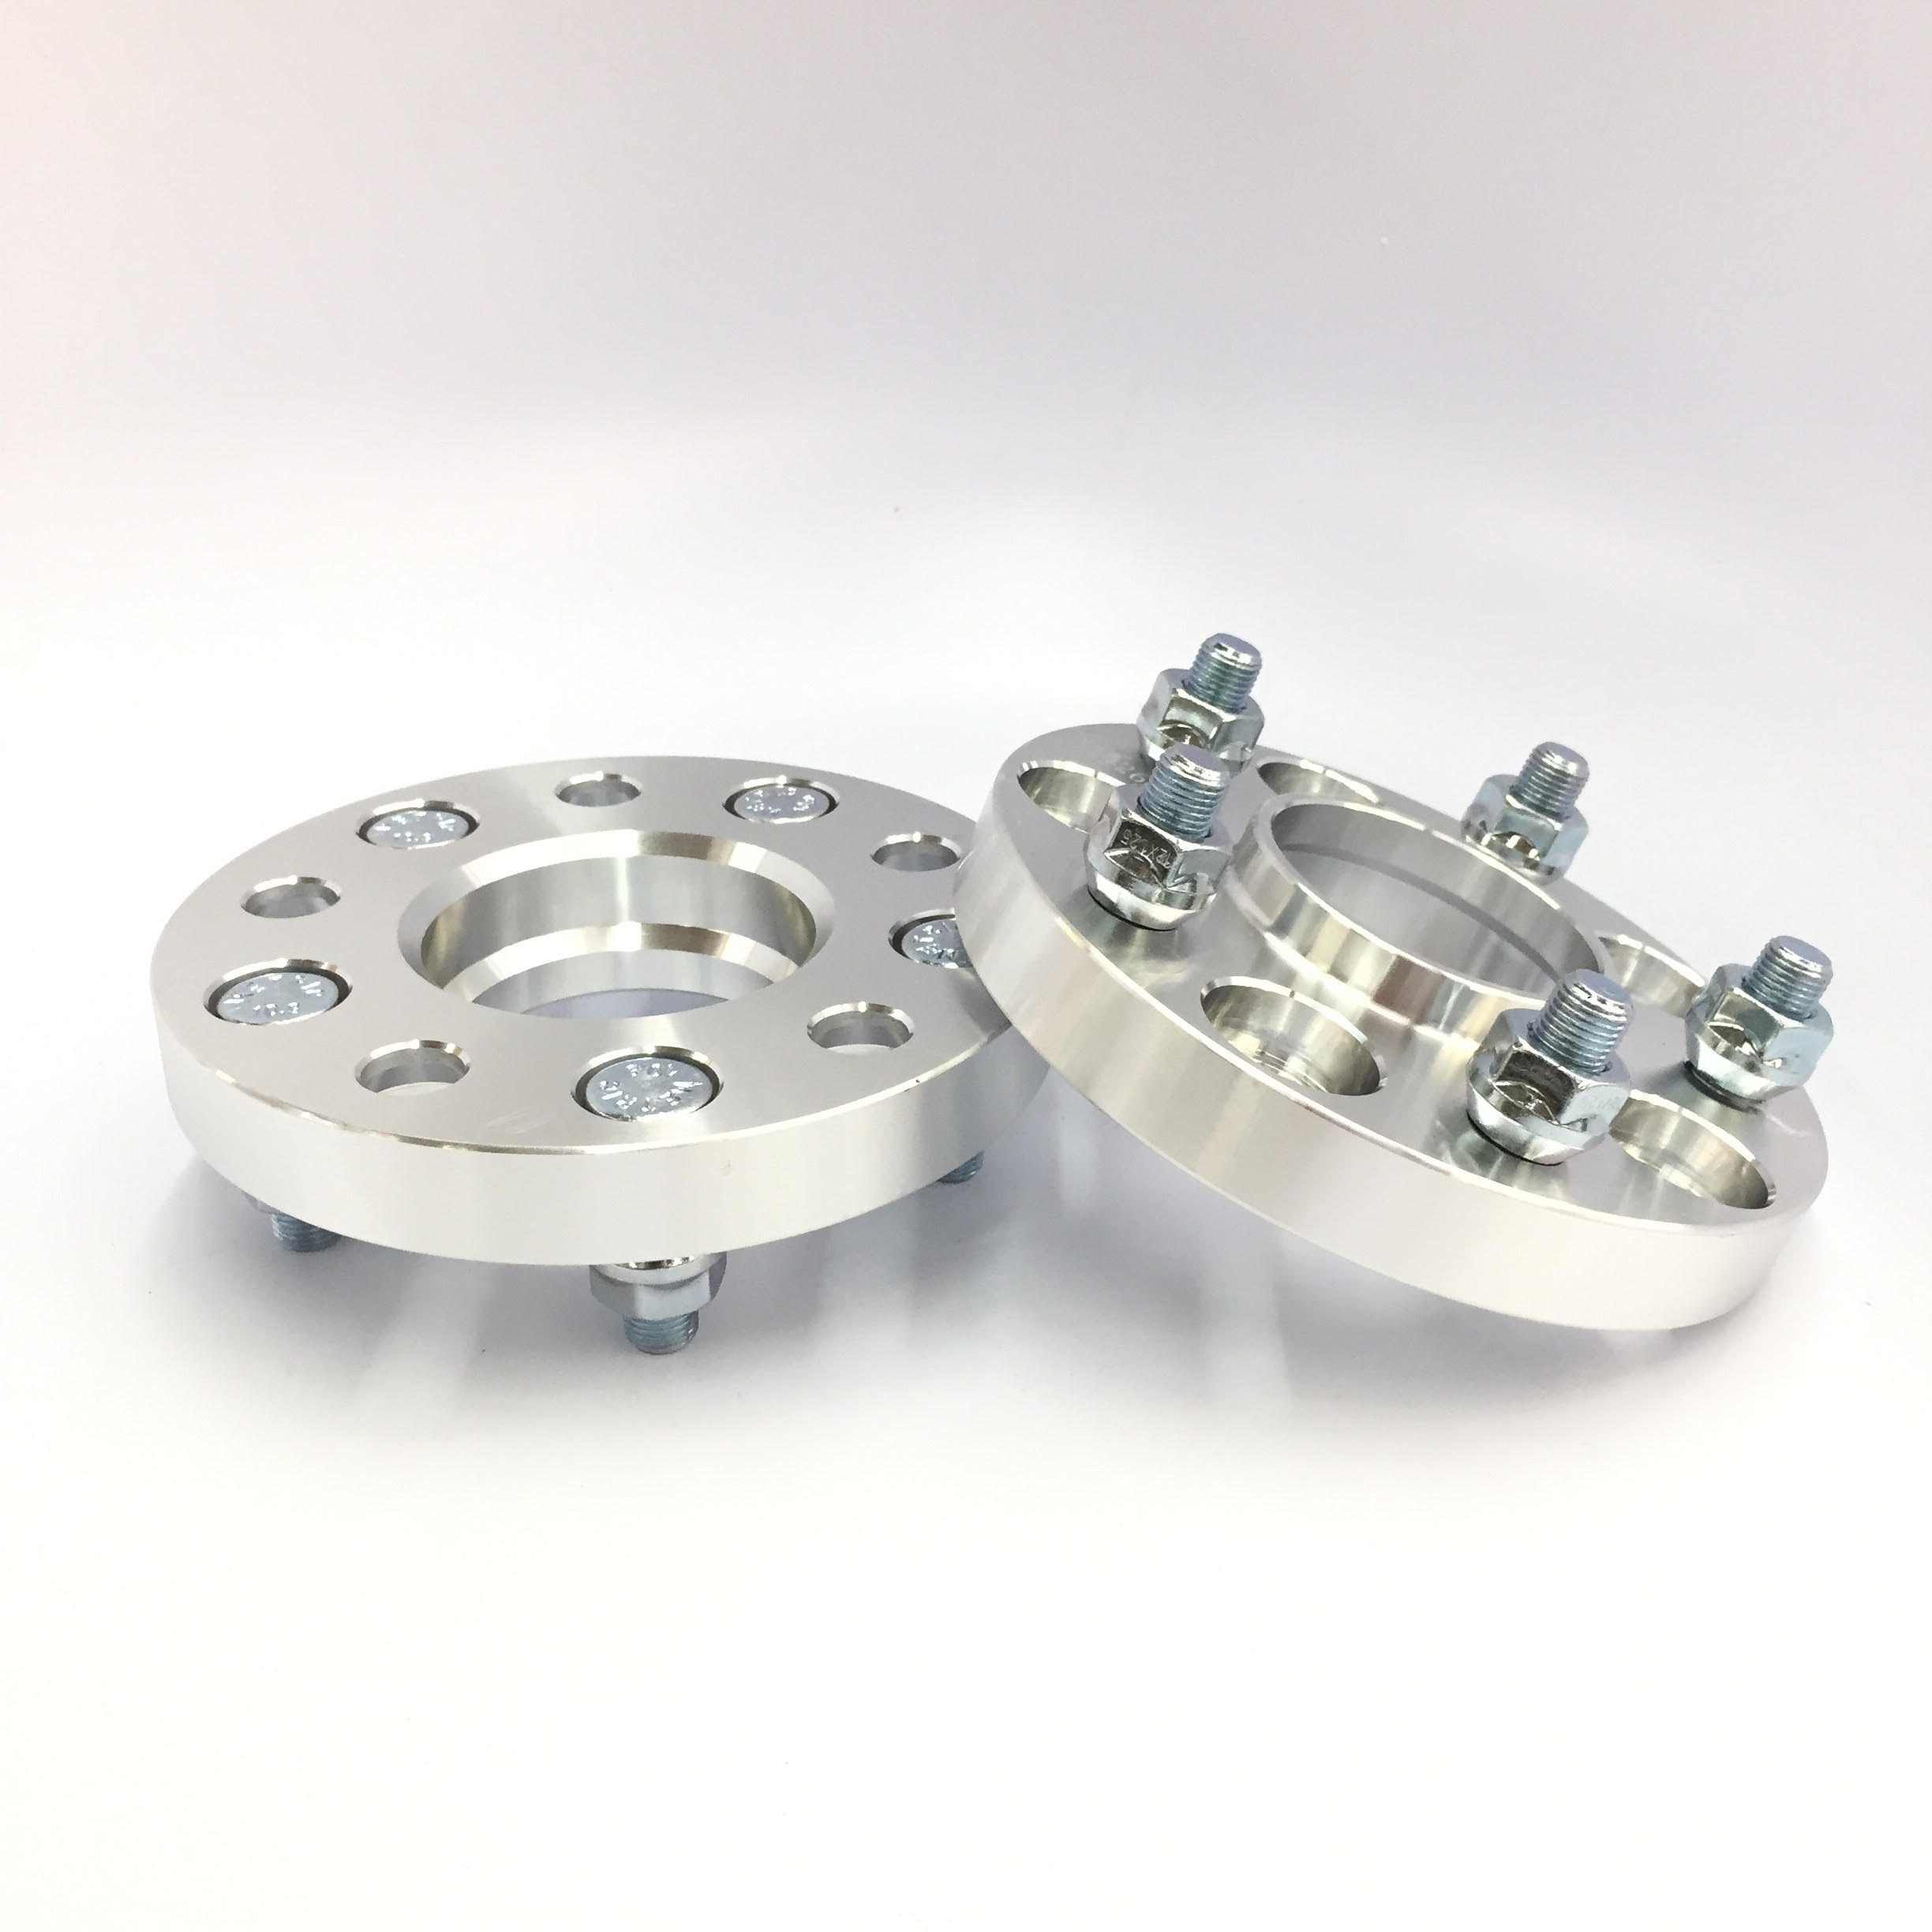 "2pc Hub Centric Wheel Adapters Spacers 5x110 to 5x120 14X1.5 ¦ 25mm 1"" Inch"